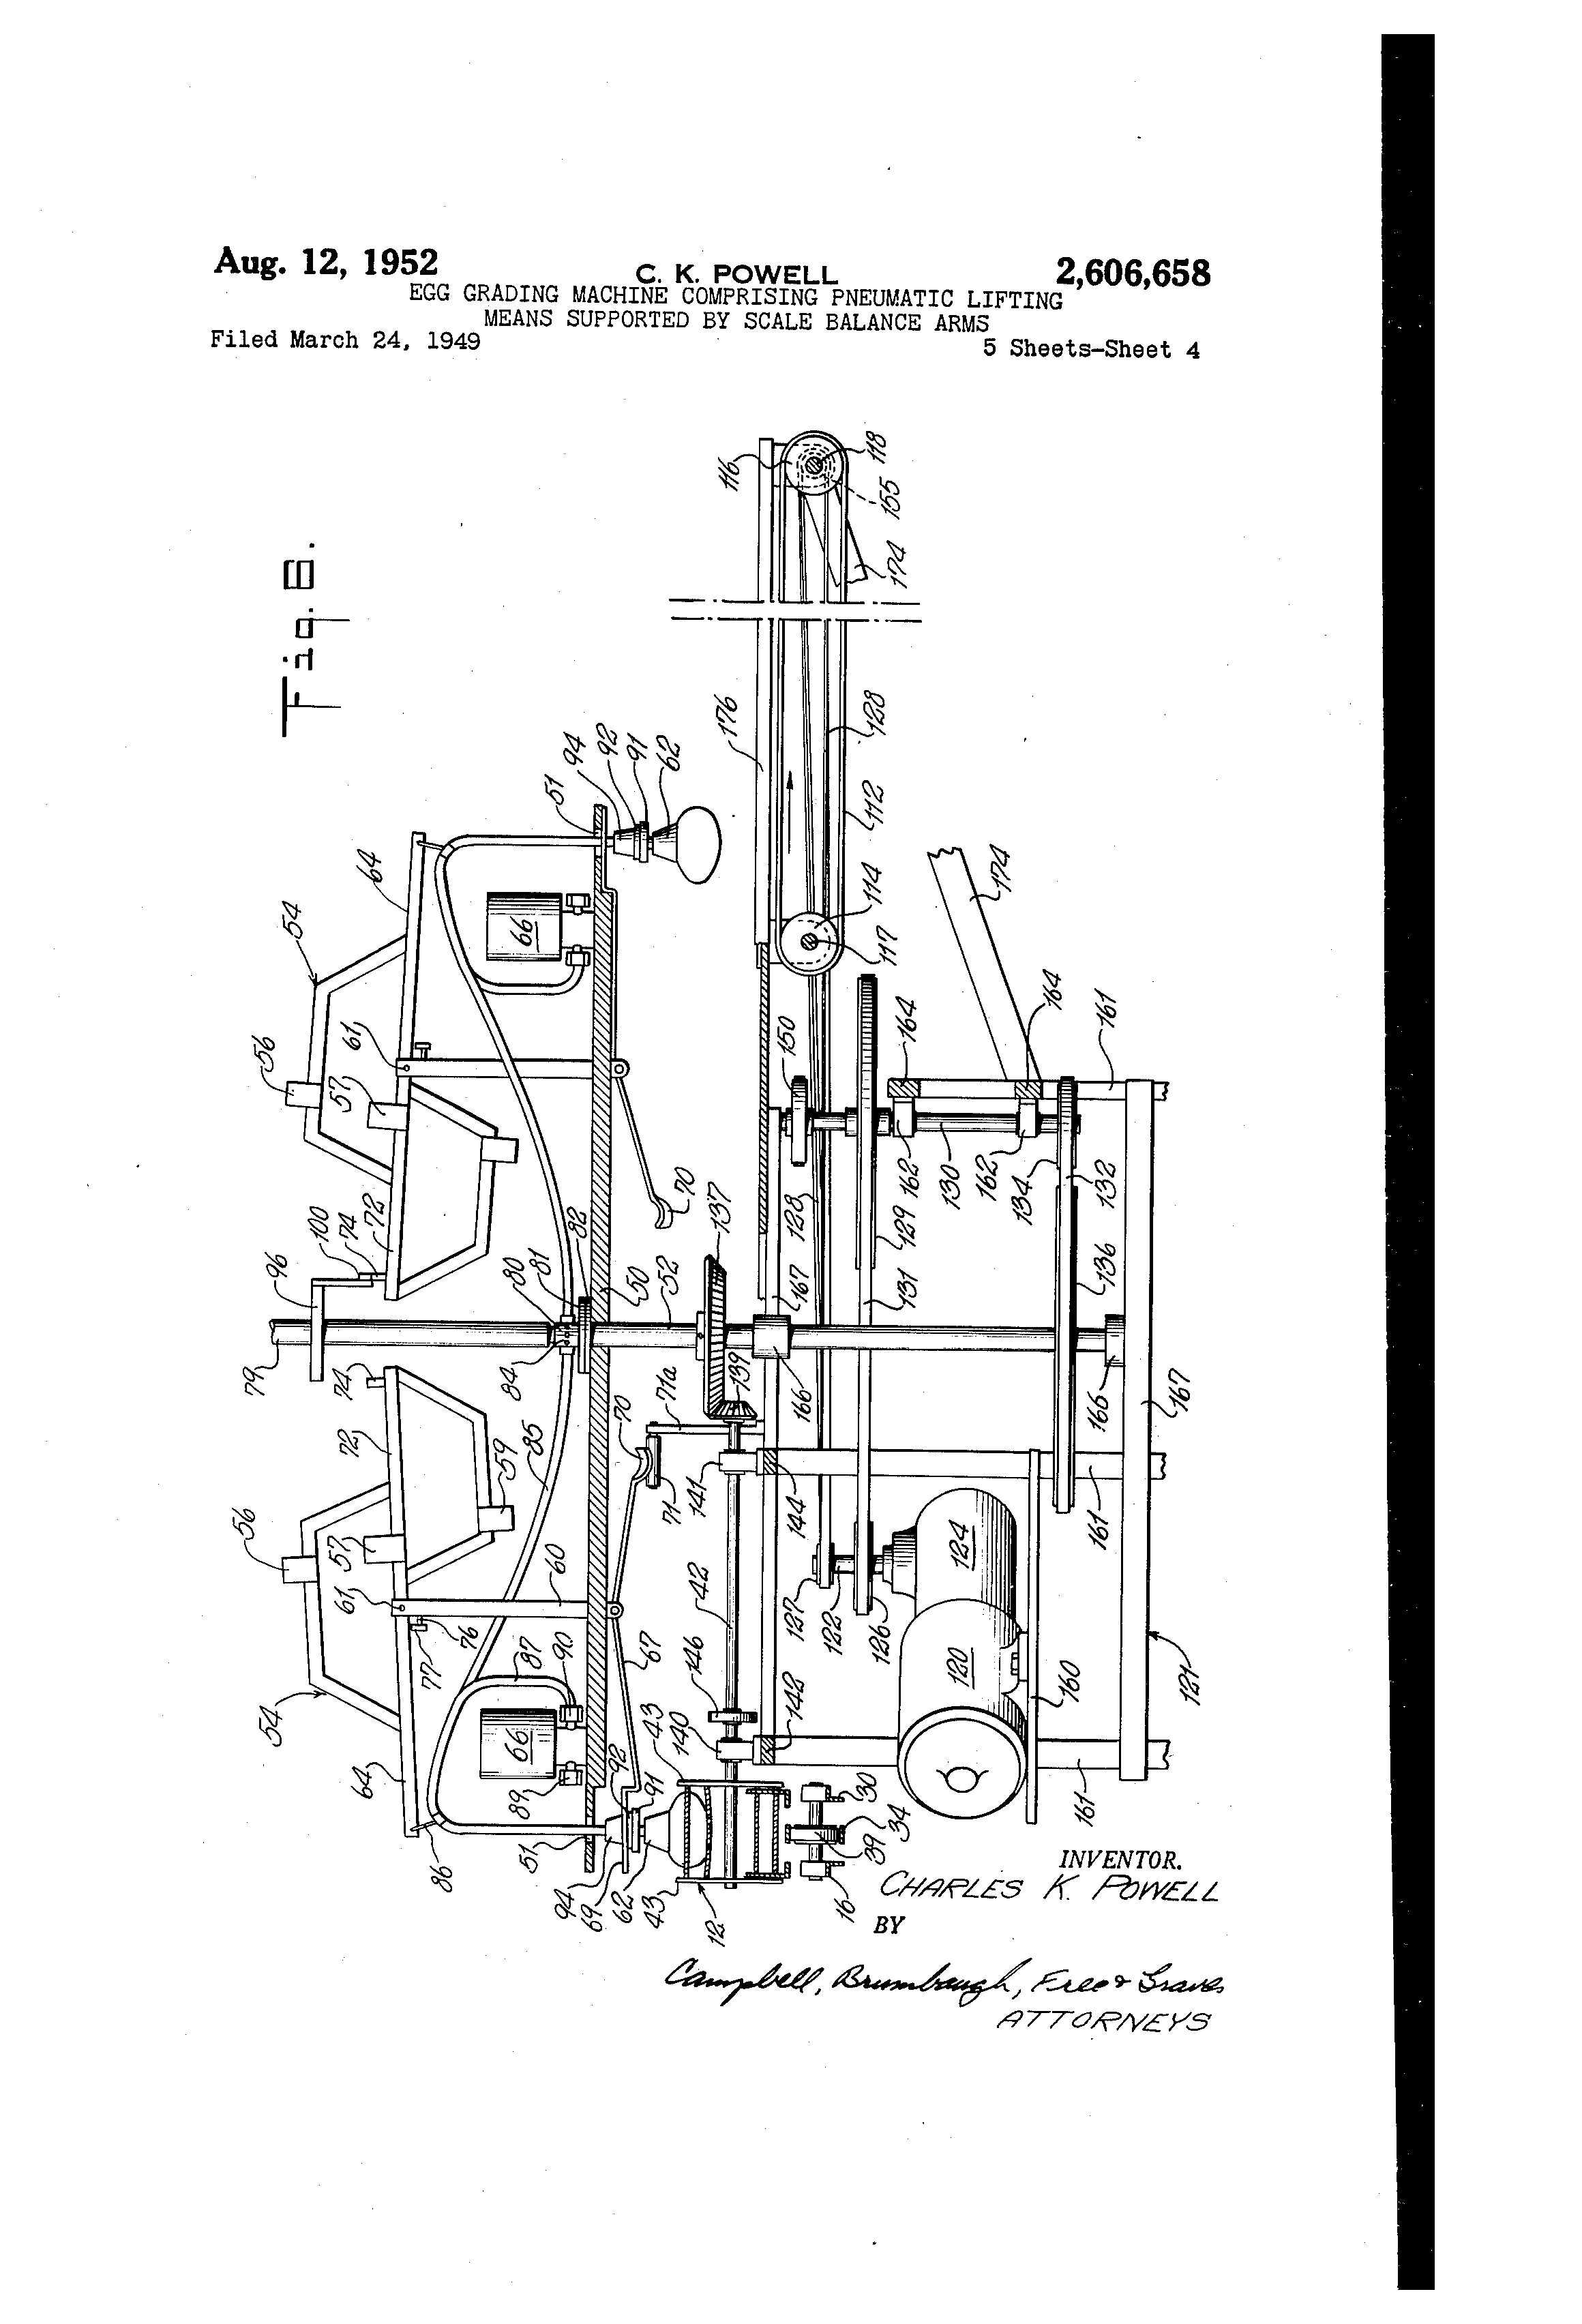 German Obermoser Electric Motor Wiring Diagram